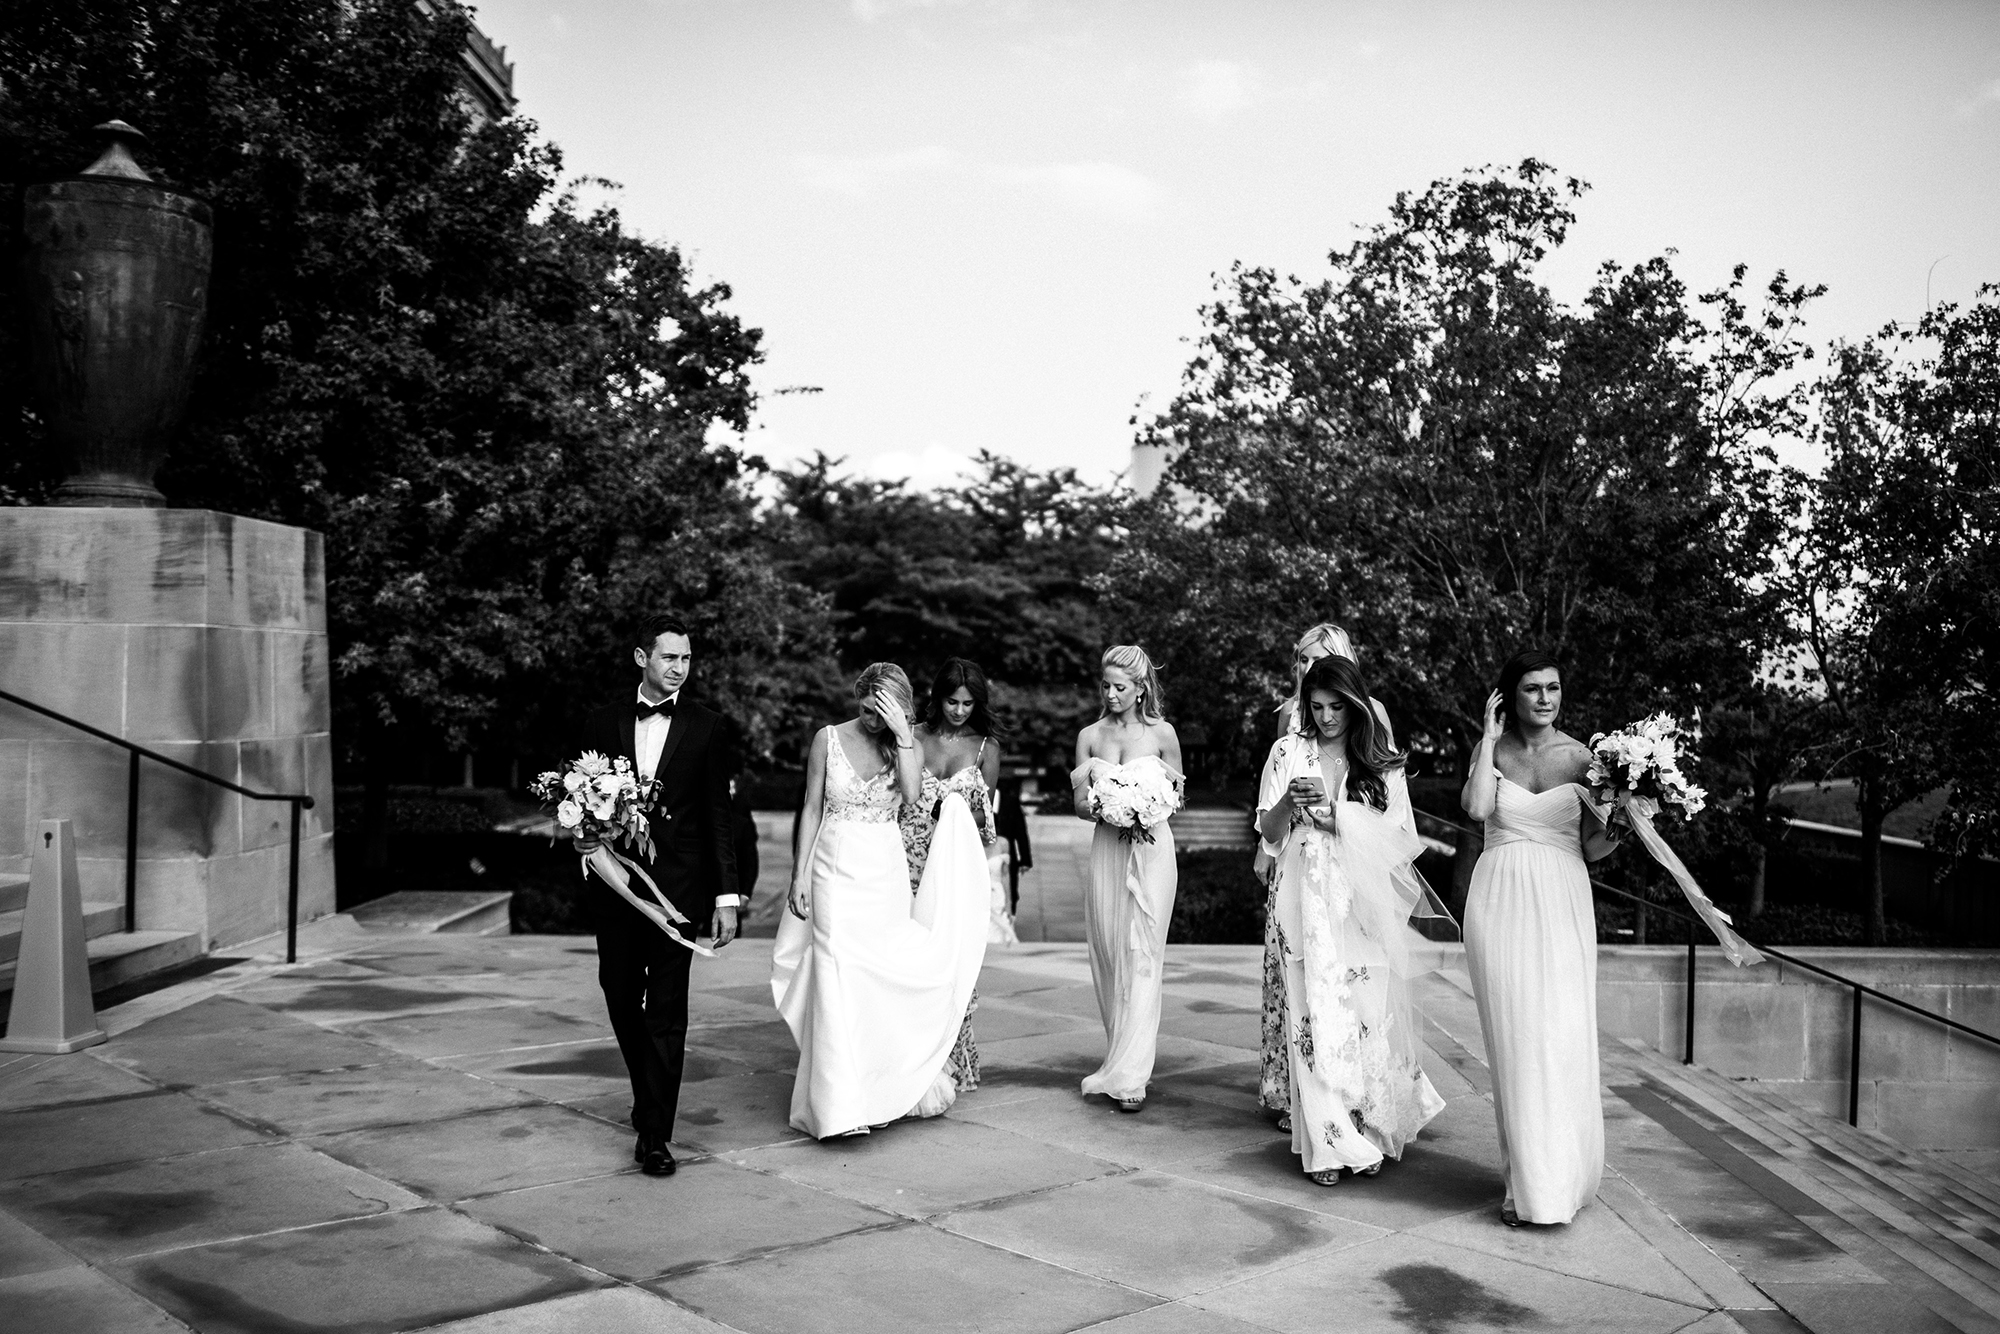 Johnny DeStefano Sarah Cascio Rusty Wright Wedding Photographs Nelson-Atkins Museum